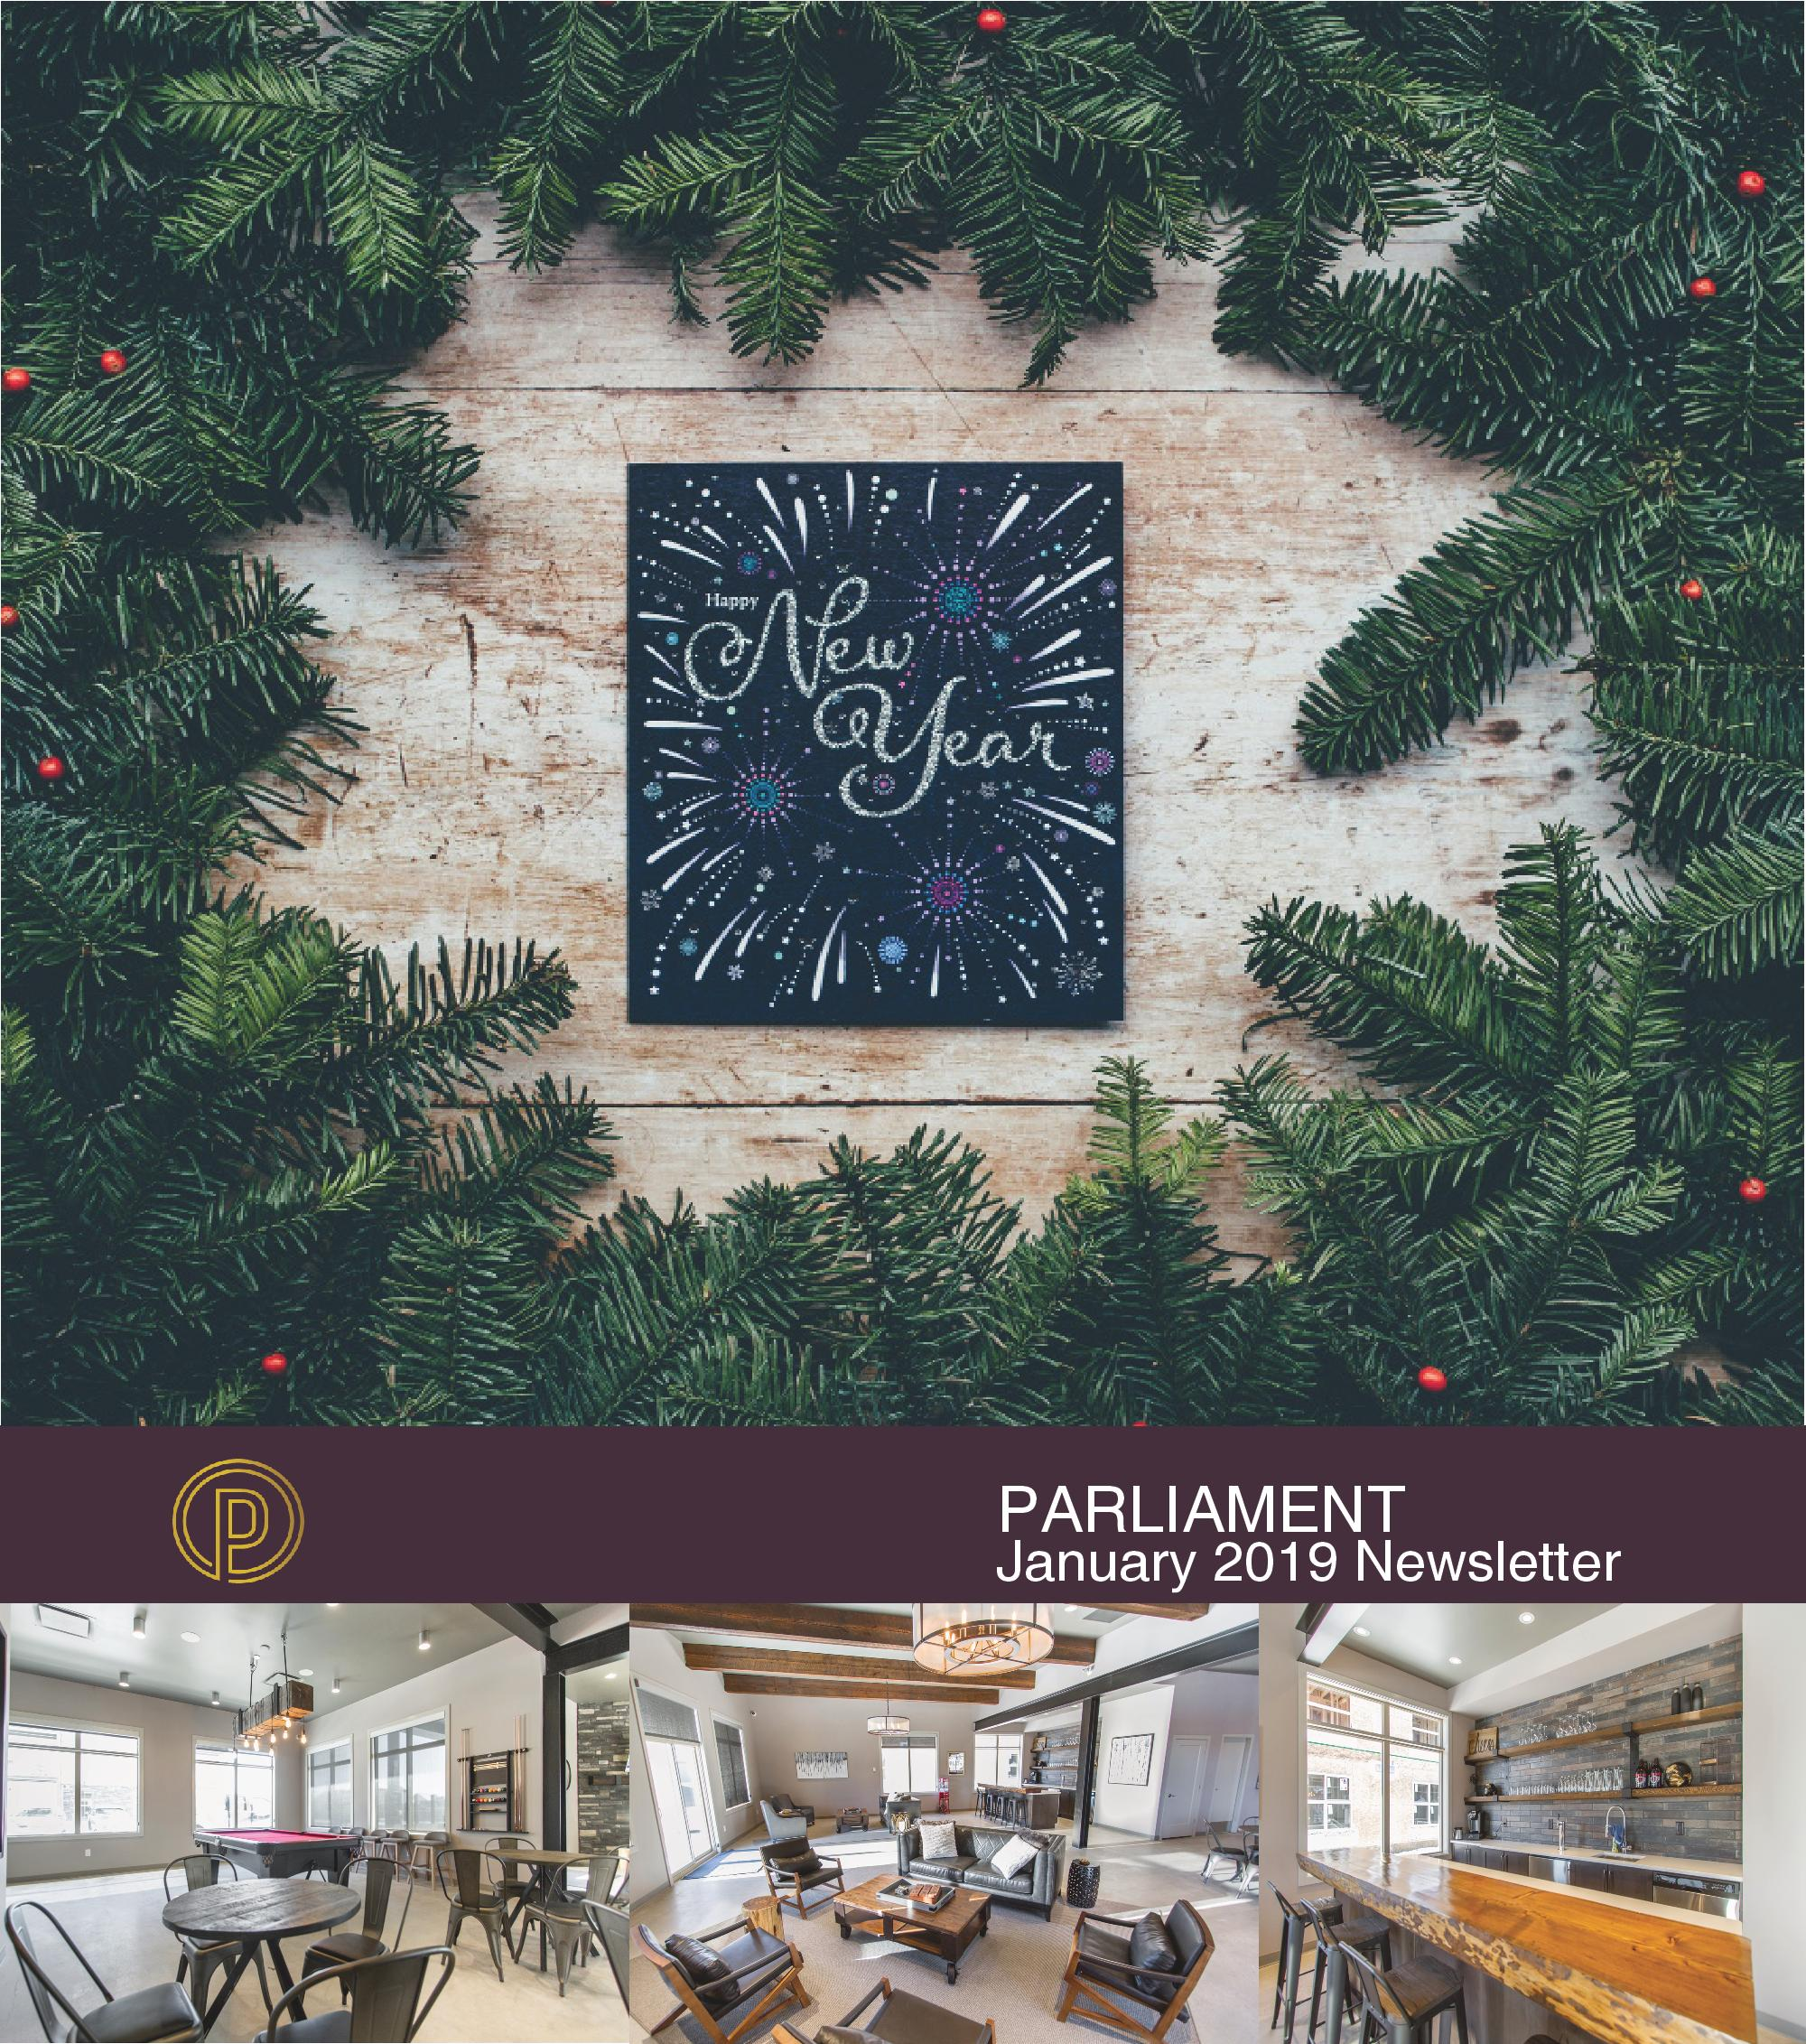 Parliament Newsletter January 2019-1-page-001.jpg